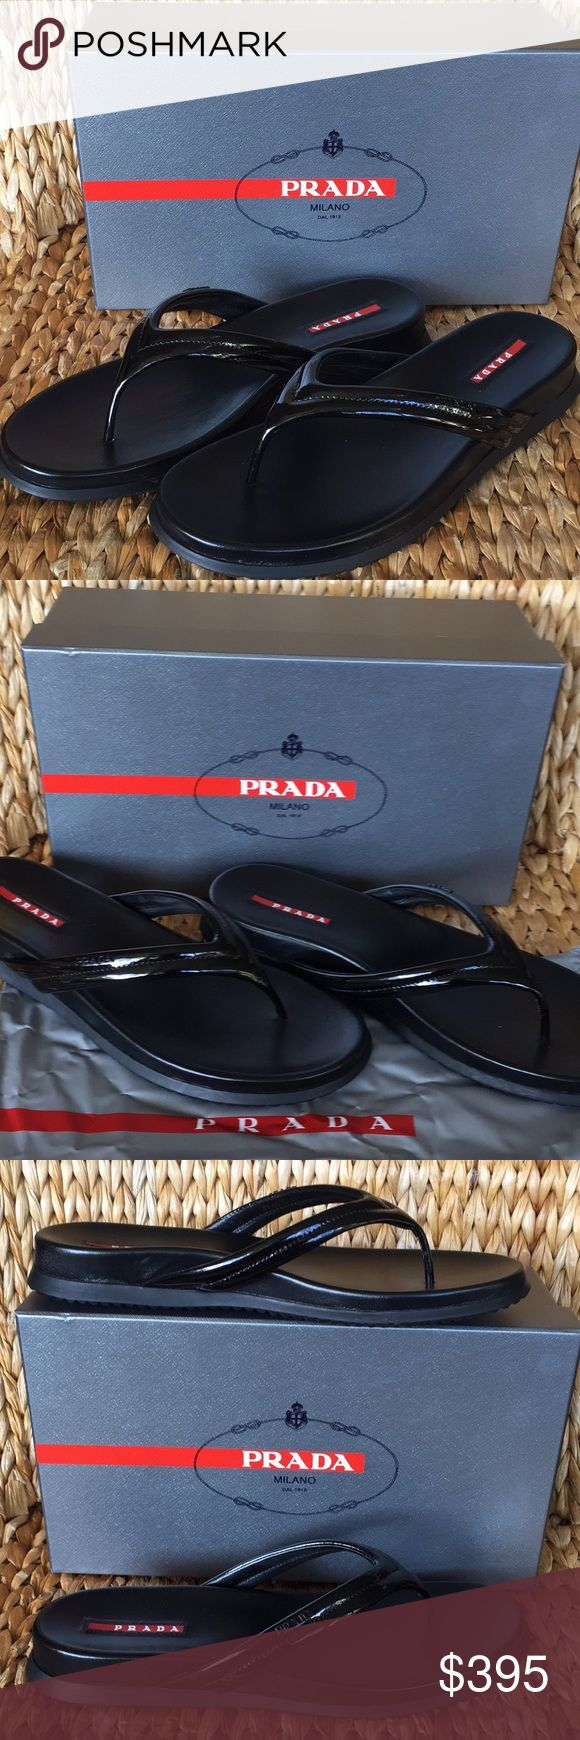 NIB Prada Black Patent Sandals 41 best for 9-10 US NIB Prada Flip Flop Sandals in size 41. These run small so best for a size 9-10 US. I'm a size 9.5 and they are perfect for me. Black patent leather straps with black Prada logo on outer strap. Leather footbed is super soft and supportive. Nice thick rubber bottoms so these will last for many many years. Come with original box and Dustbag. Proof of purchase upon request at time of purchase.... Prada Shoes Sandals